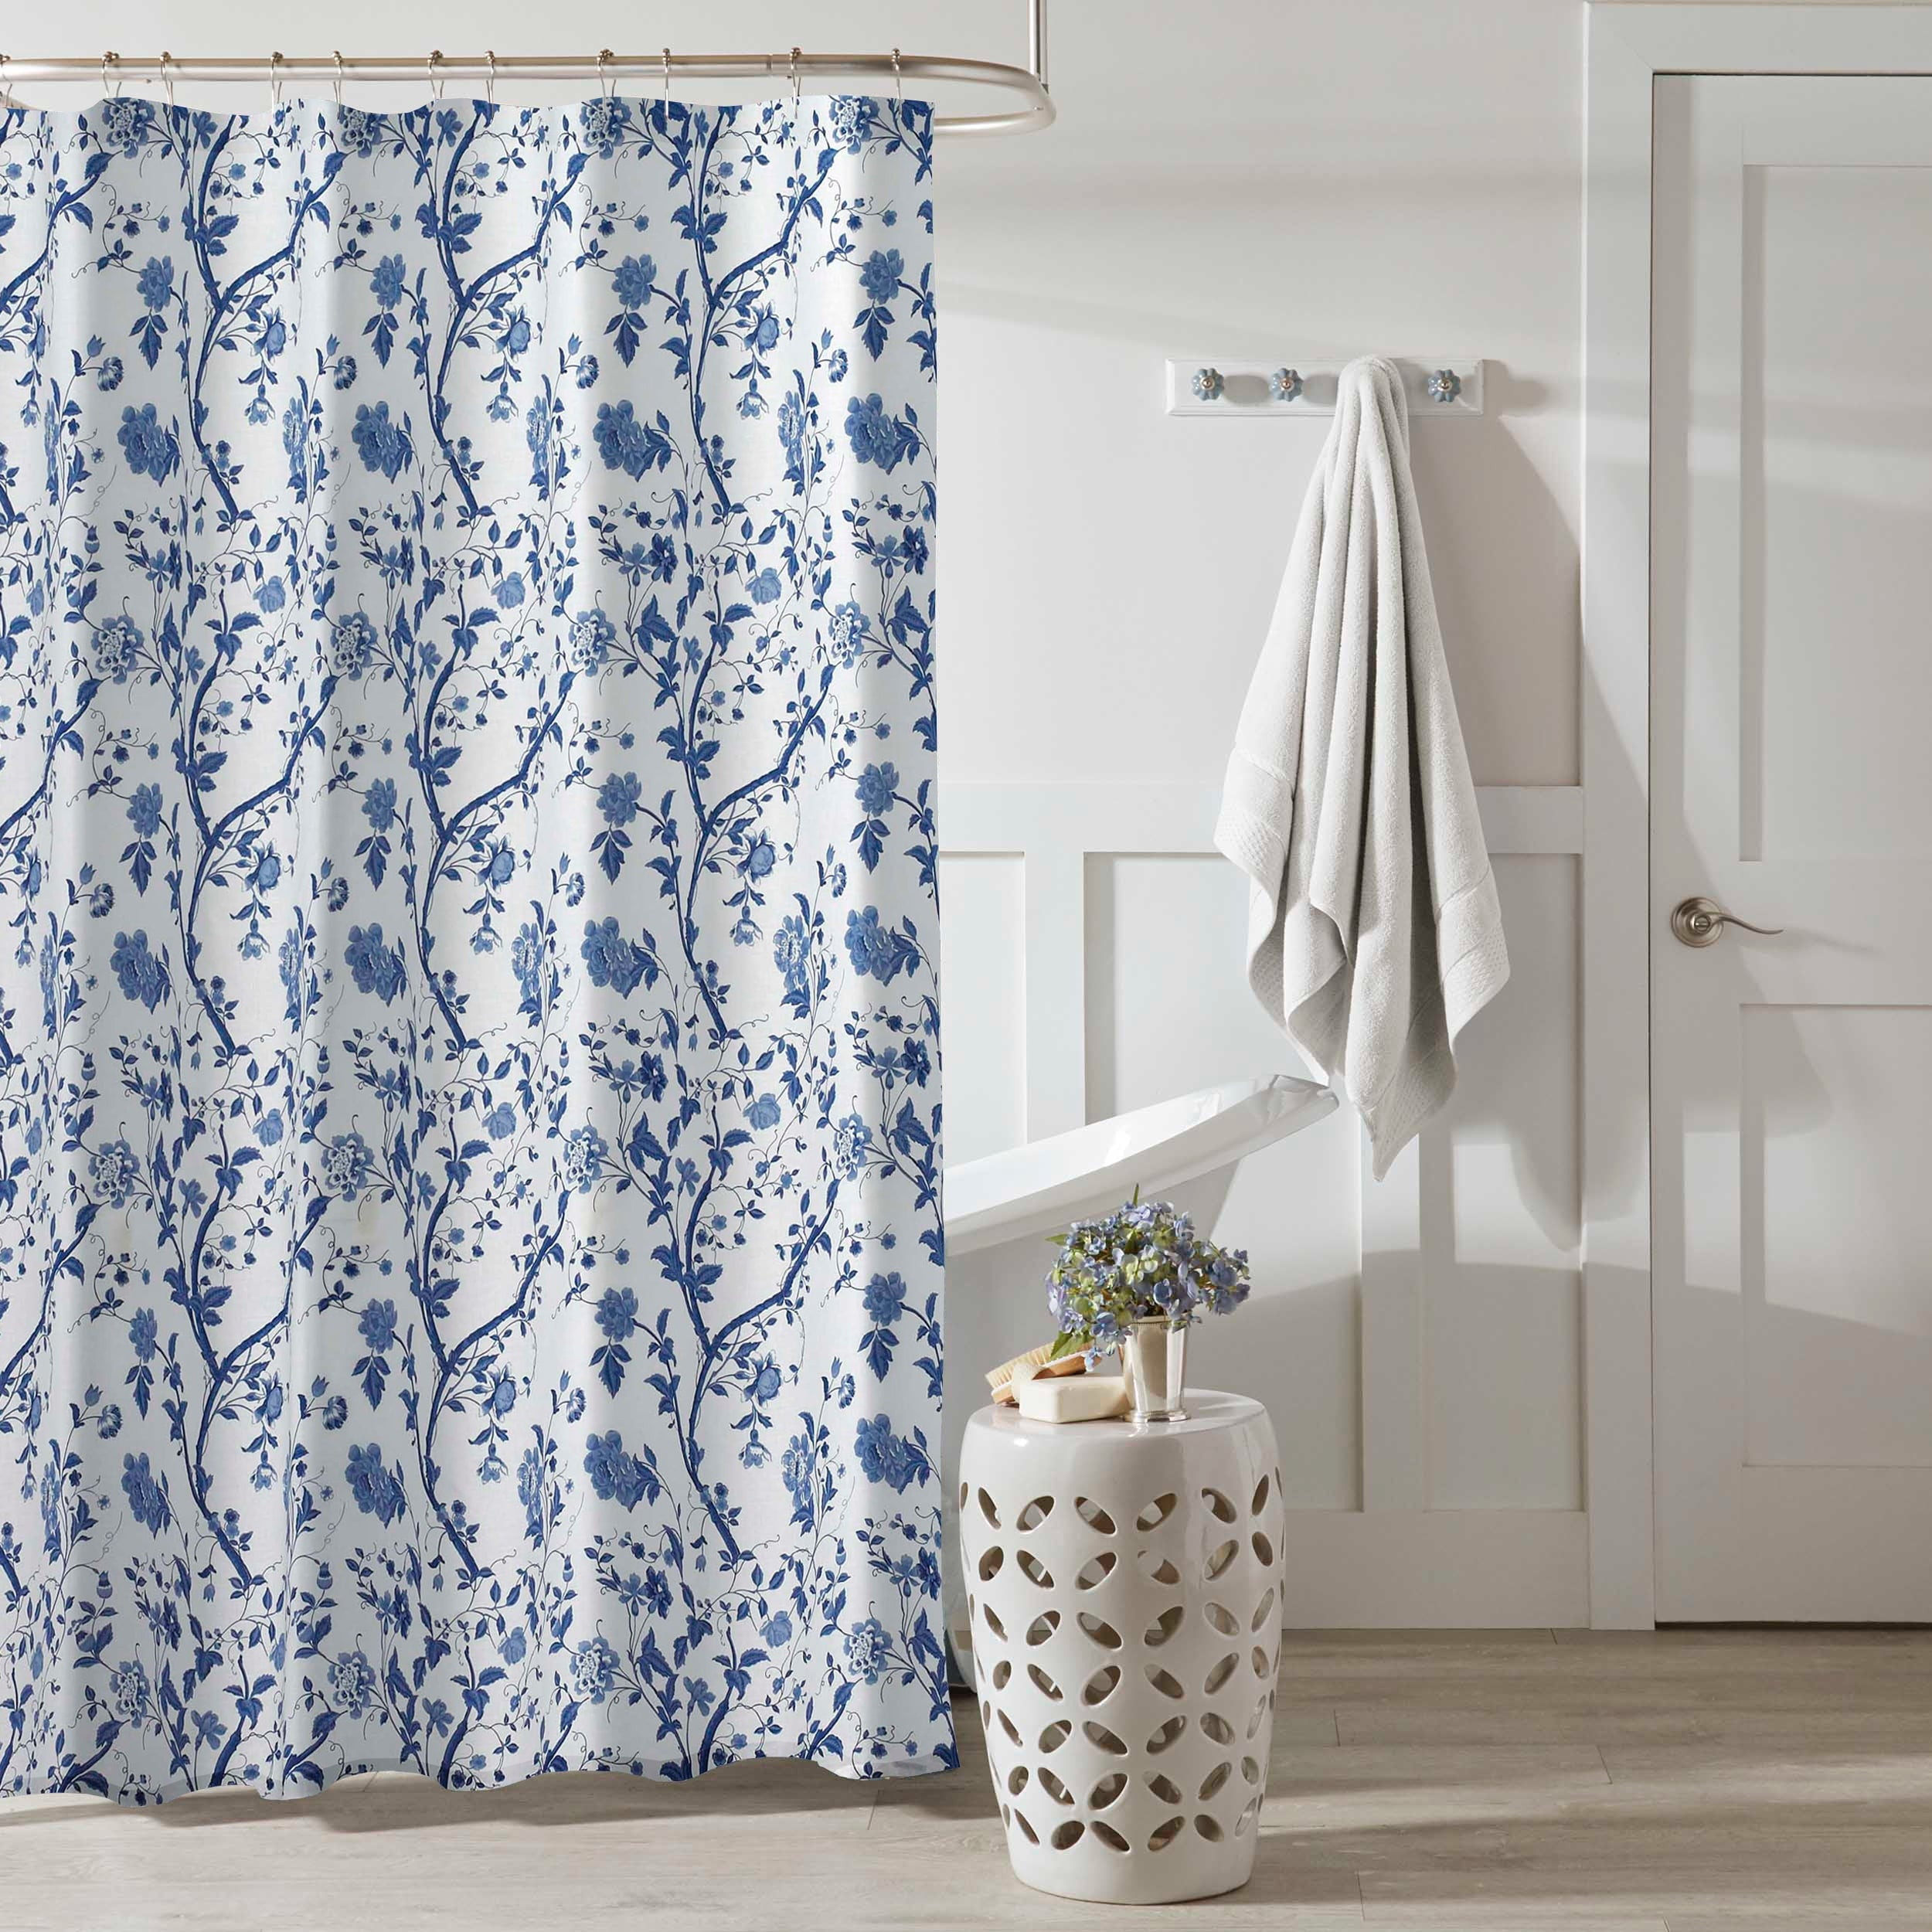 Laura Ashley Charlotte Blue Floral Shower Curtain 72 X 72 Overstock 12452841